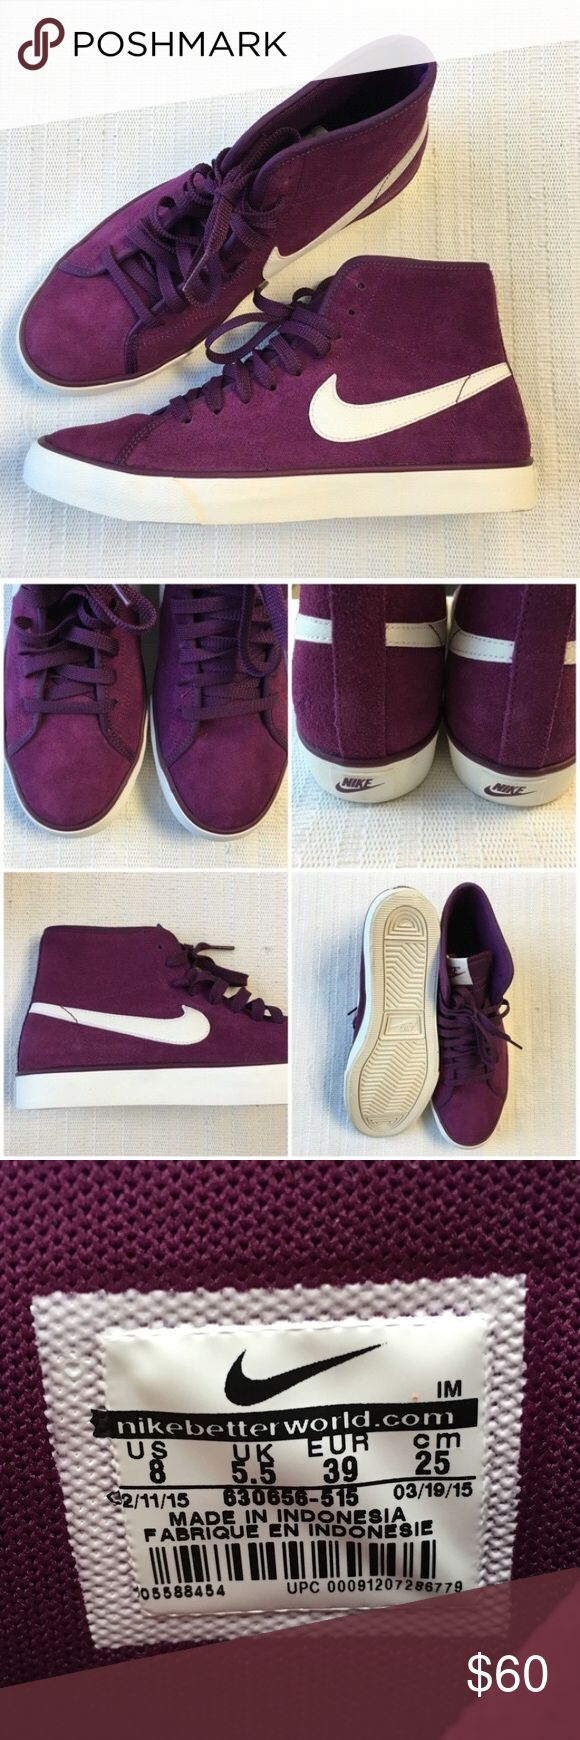 Women's NIKE Primo Court Suede Mid-Top Sneakers Women's NIKE Primo Court Suede Mid-Top Sneakers Style/Color: 630656-515  • Women's size 8  • NEW in box (no lid) • No trades • 100% authentic Nike Shoes Sneakers